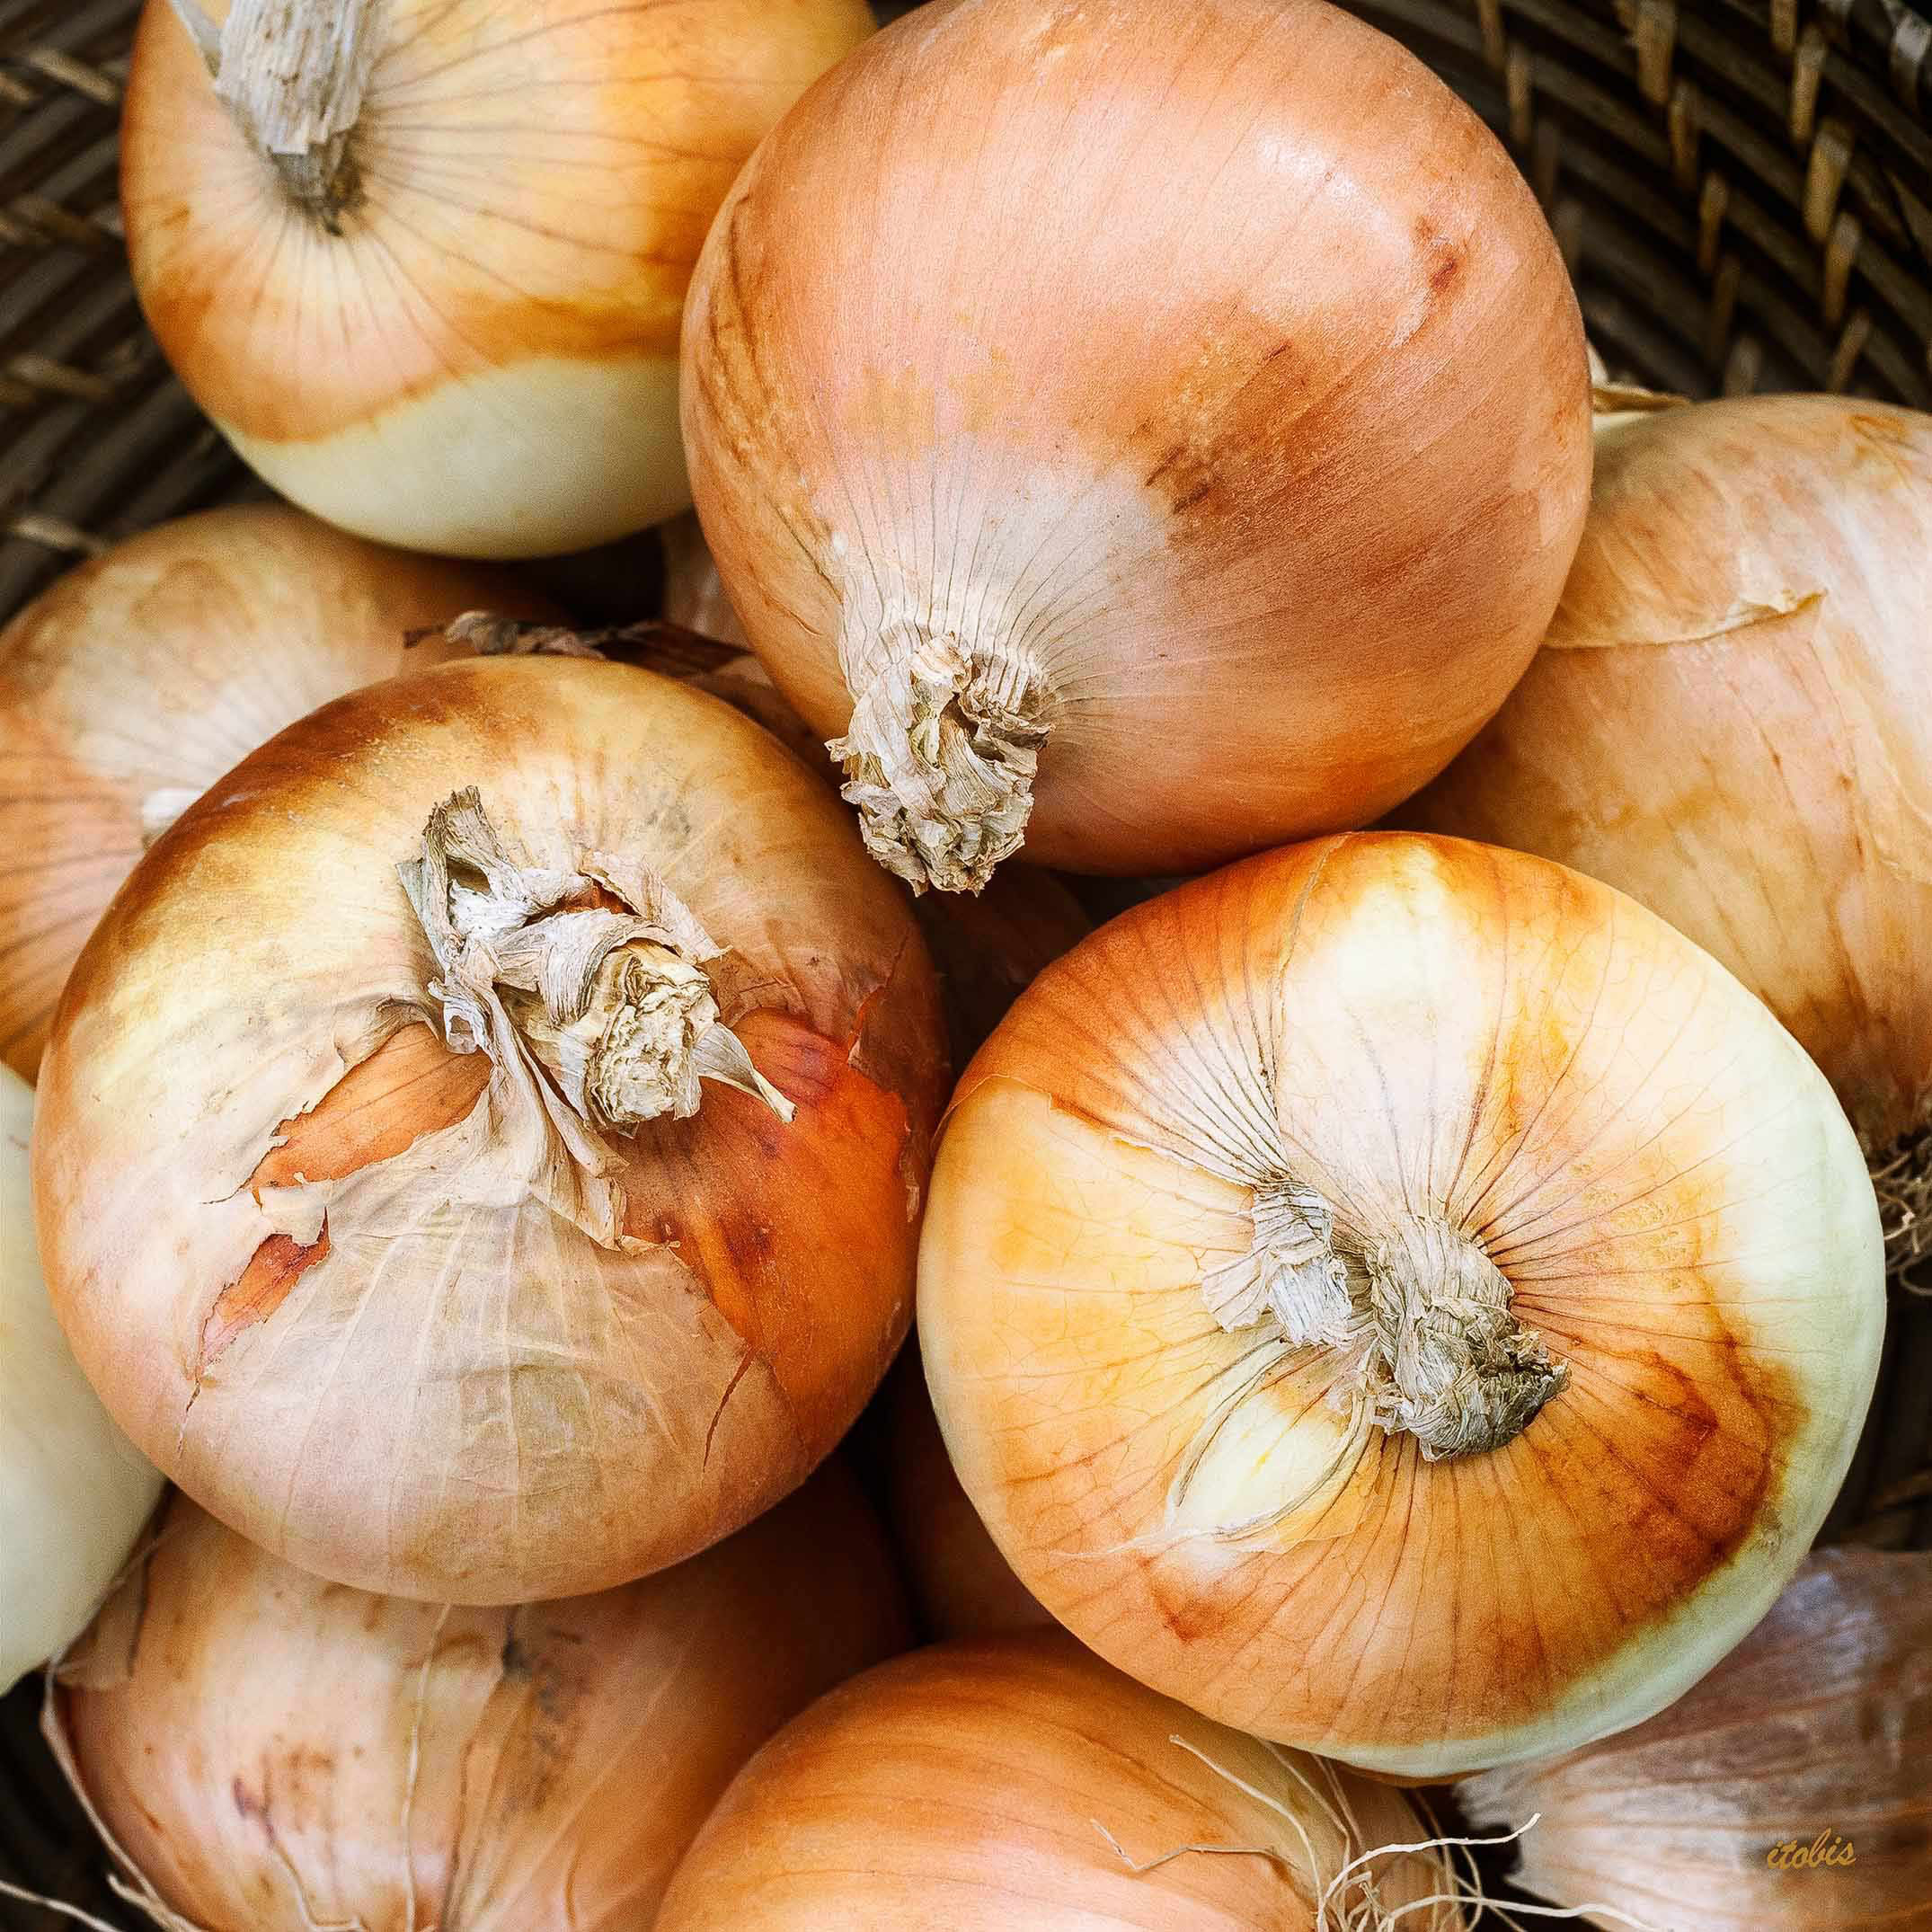 Onions At The Market - Luxy Farm - Ottawa Farmers' Market, Lansdowne Park - photo by Irene Tobis